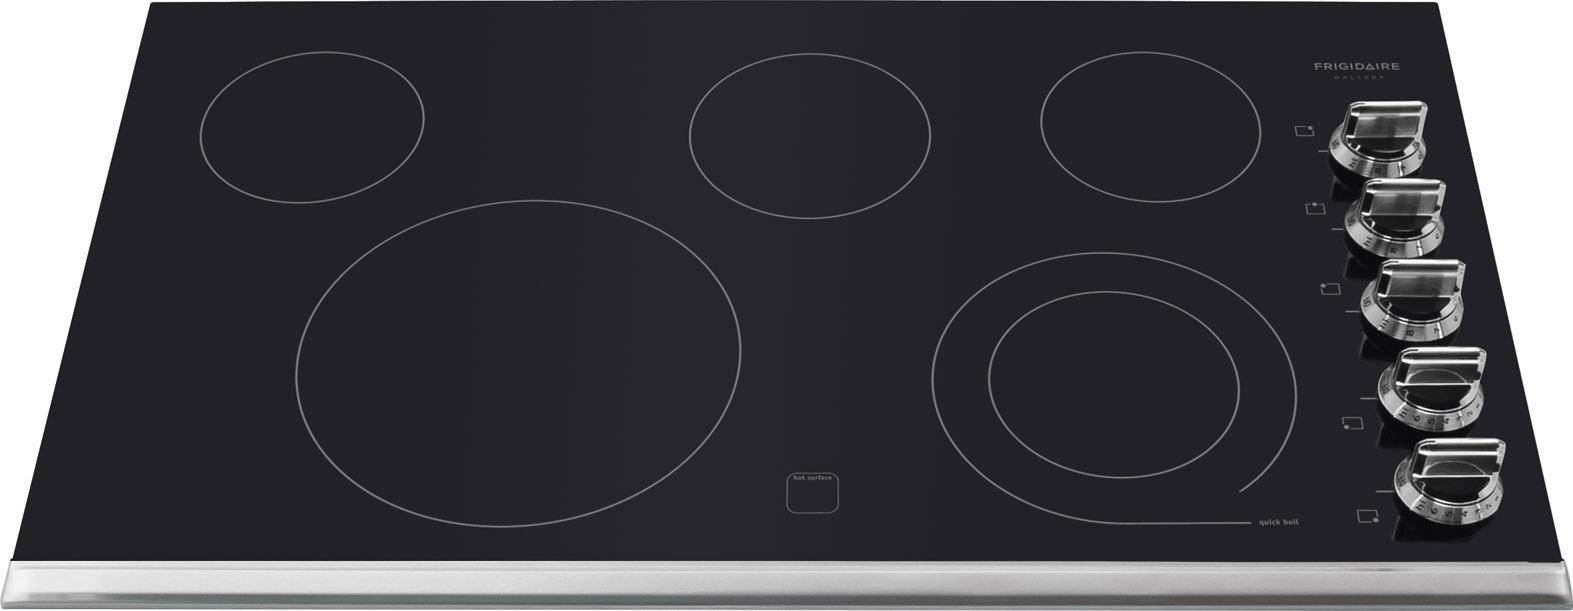 Frigidaire Gallery Black 30 30 Inch Electric Stovetop Cooktop FGEC3045KB